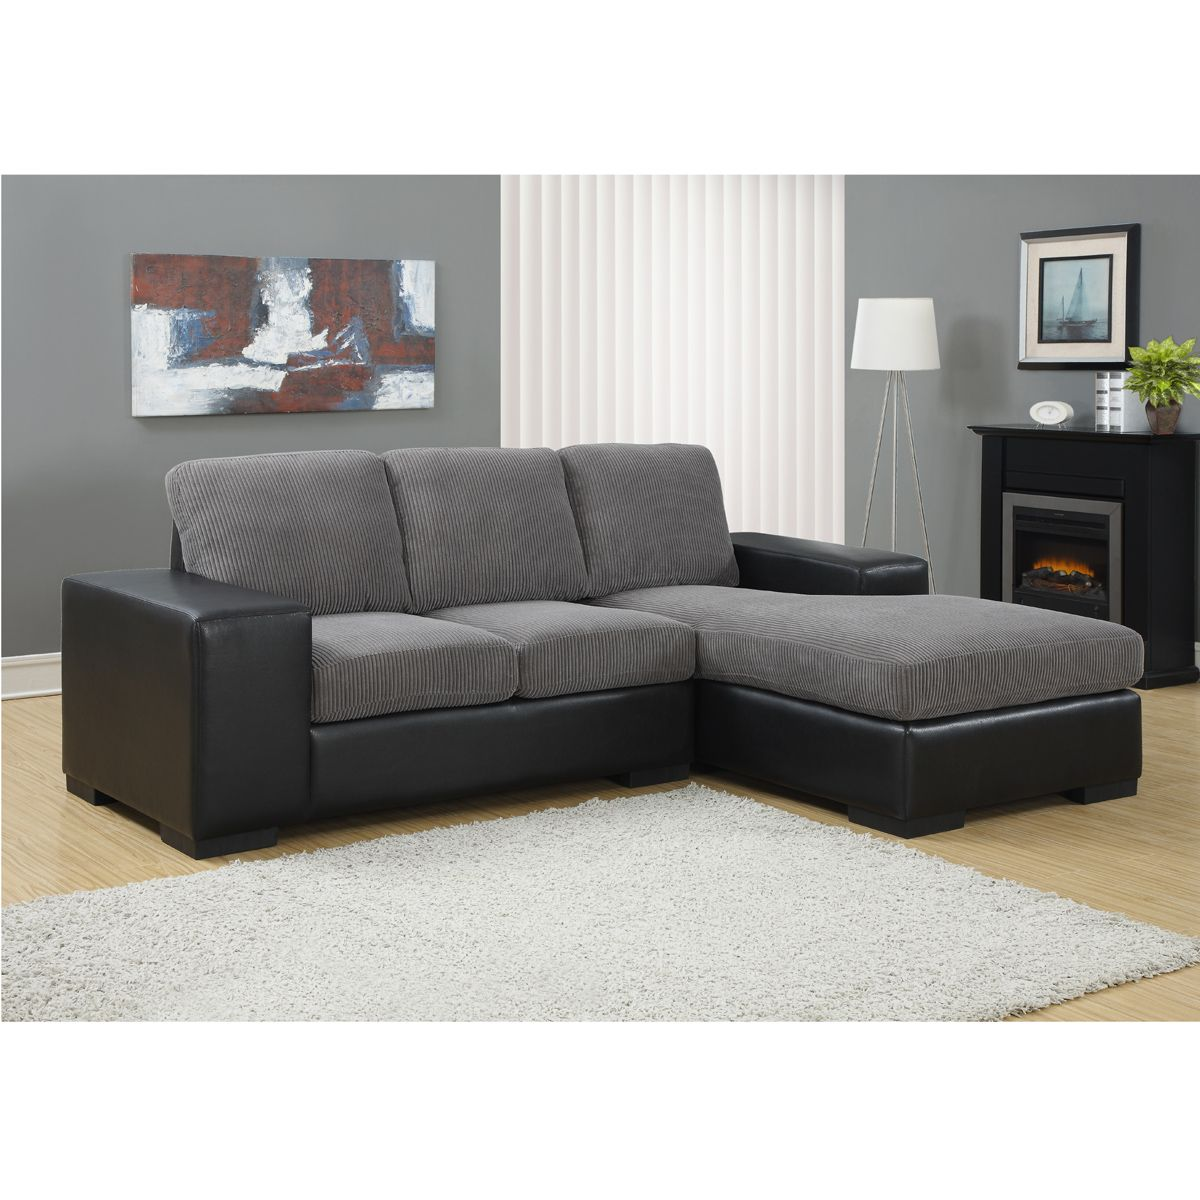 Pin On Sectional Couches